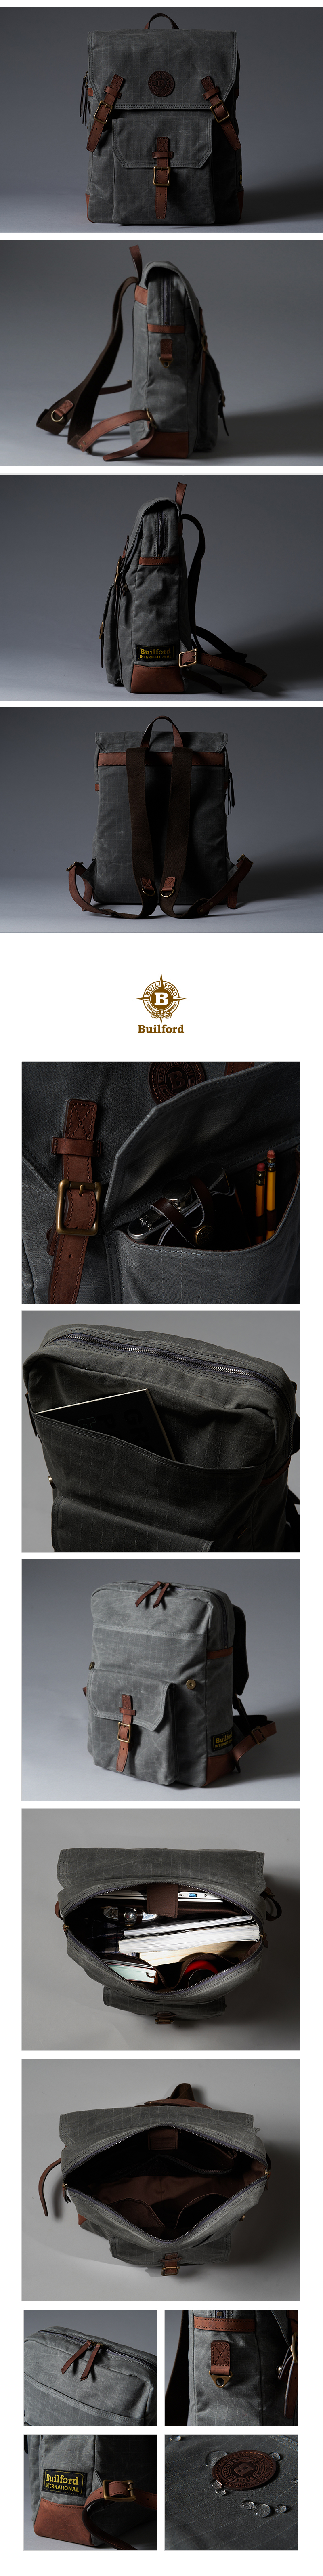 Urban  backpack_2